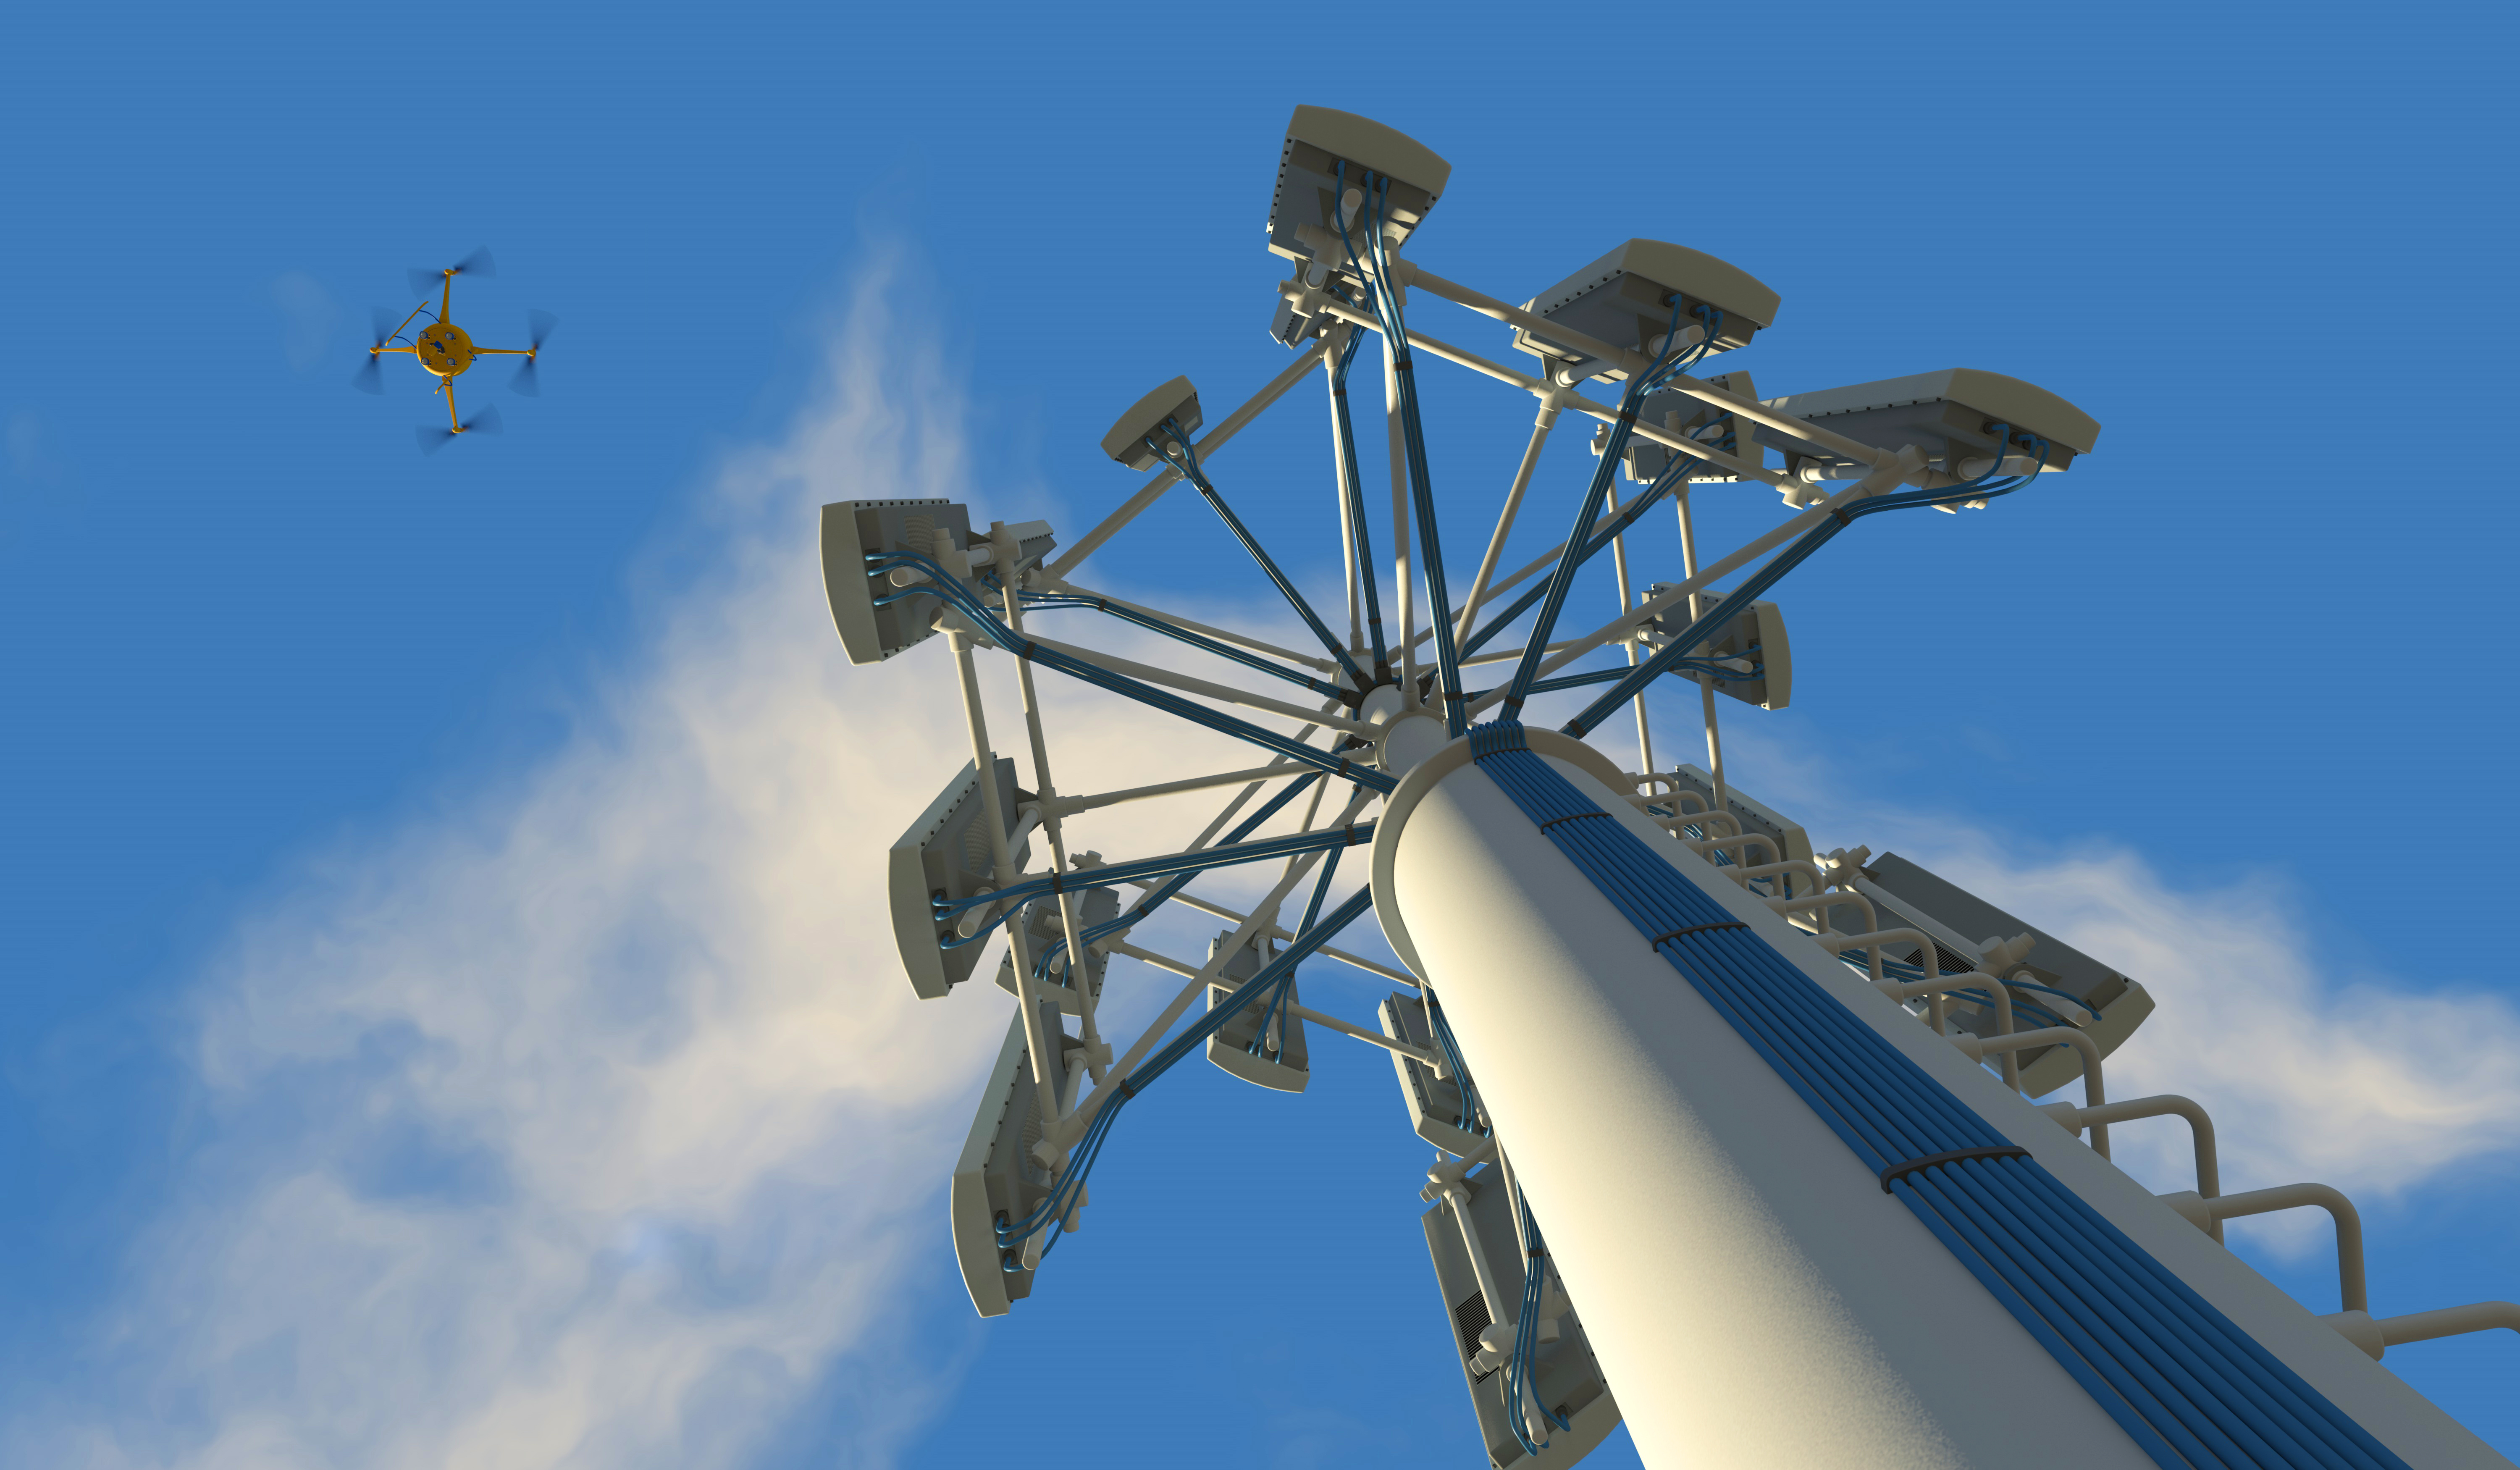 Drone inspecting telephone tower